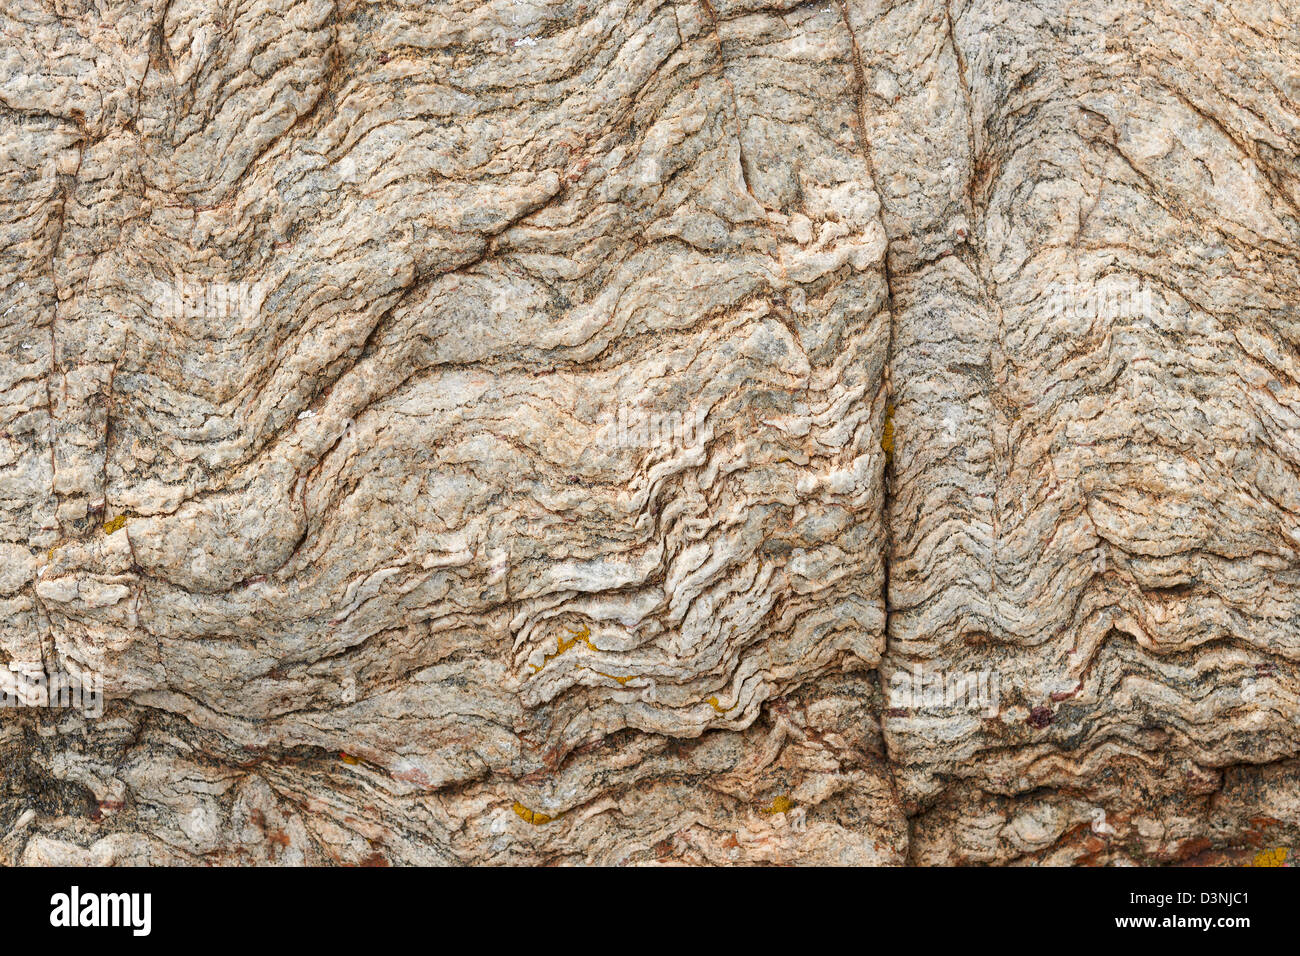 Texture of magma rock on land surface close-up - Stock Image